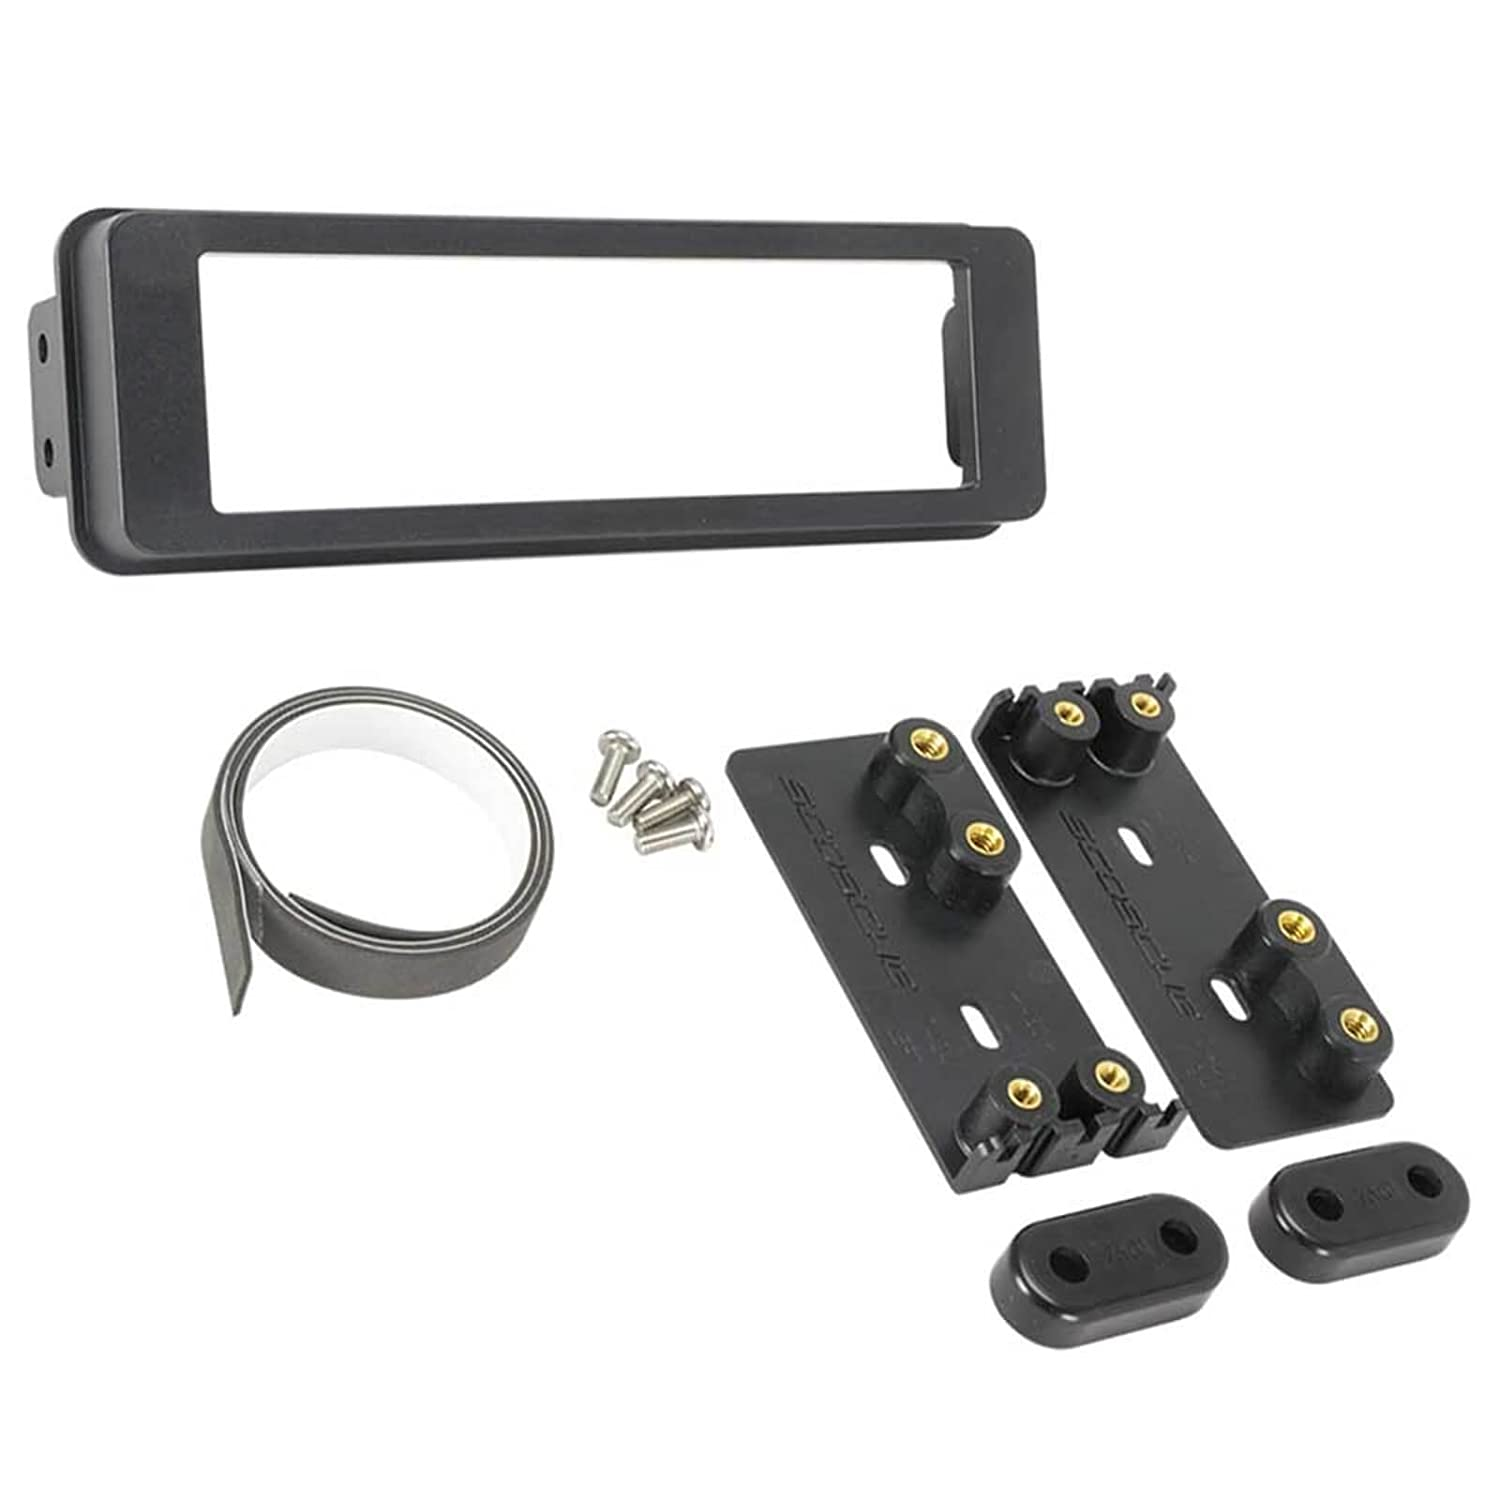 Amazon.com: Scosche HD7000B 1996-Up Harley Davidson Stereo Dash Kit  W/HDSWC1 Steering Wheel Control & Enrock Radio Antenna: Cell Phones &  Accessories